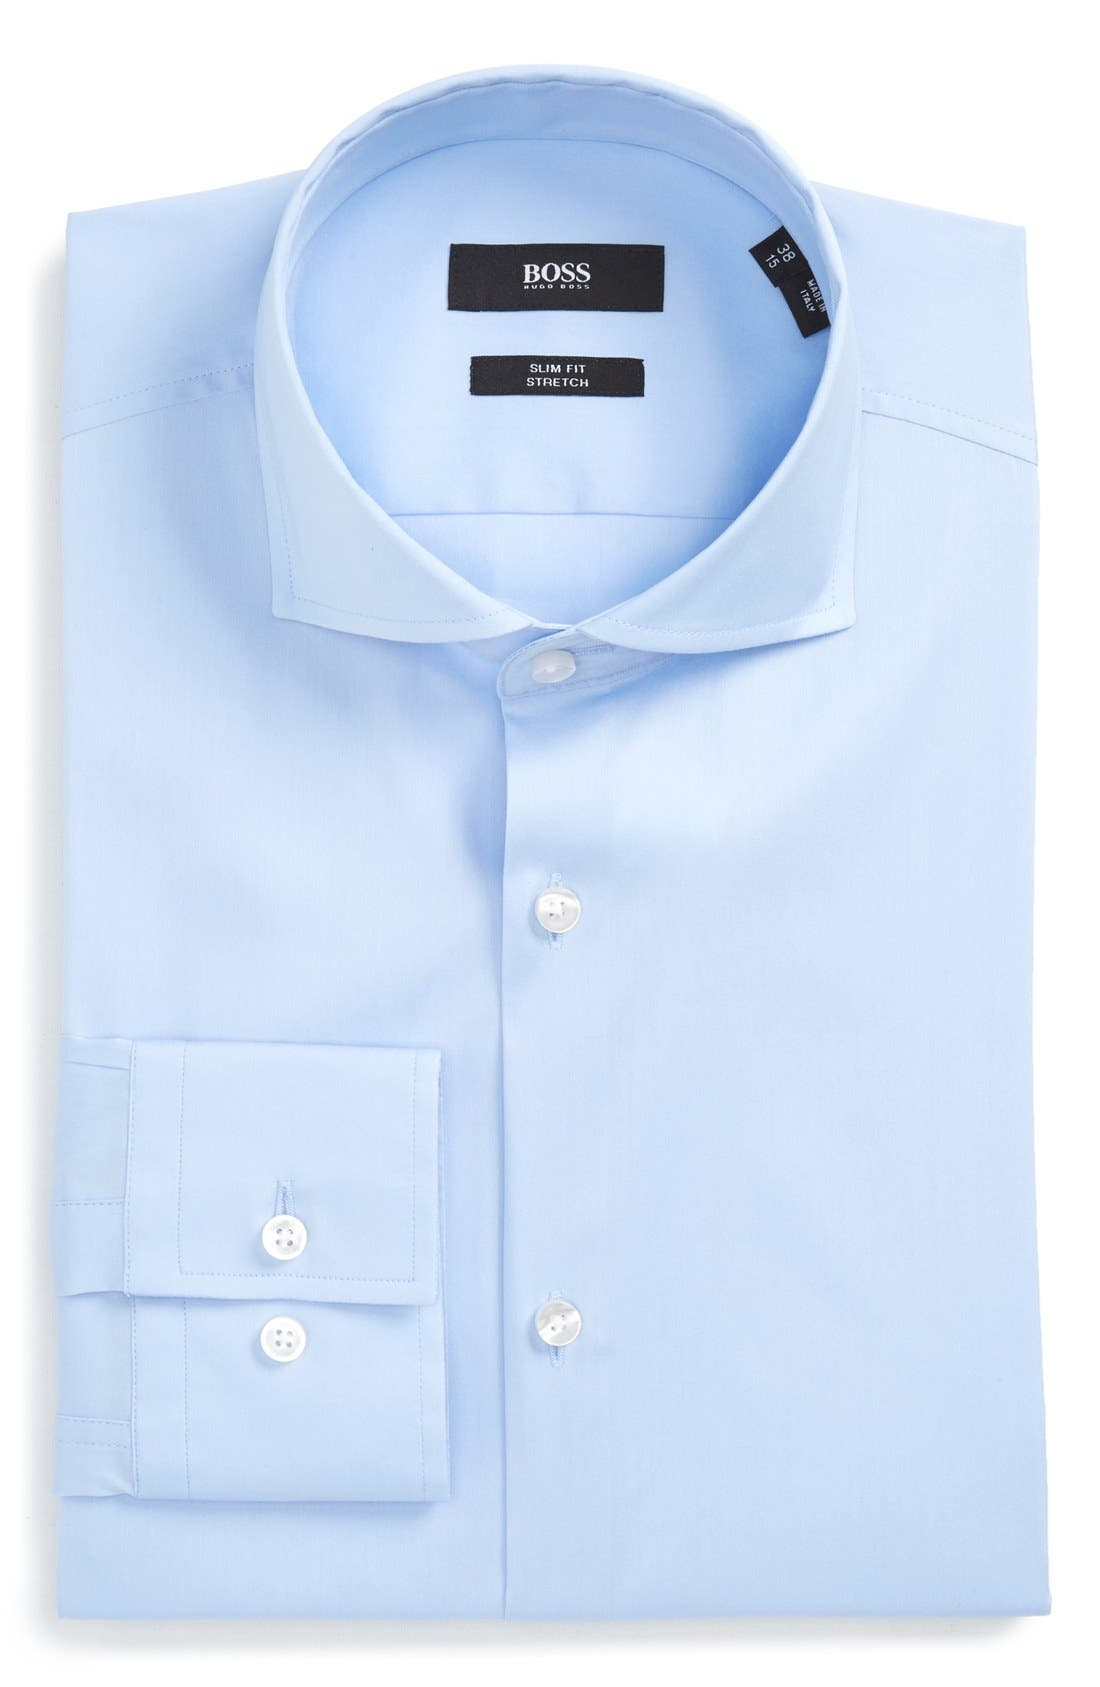 Alternate Image 1 Selected - BOSS 'Jason' Slim Fit Solid Stretch Dress Shirt